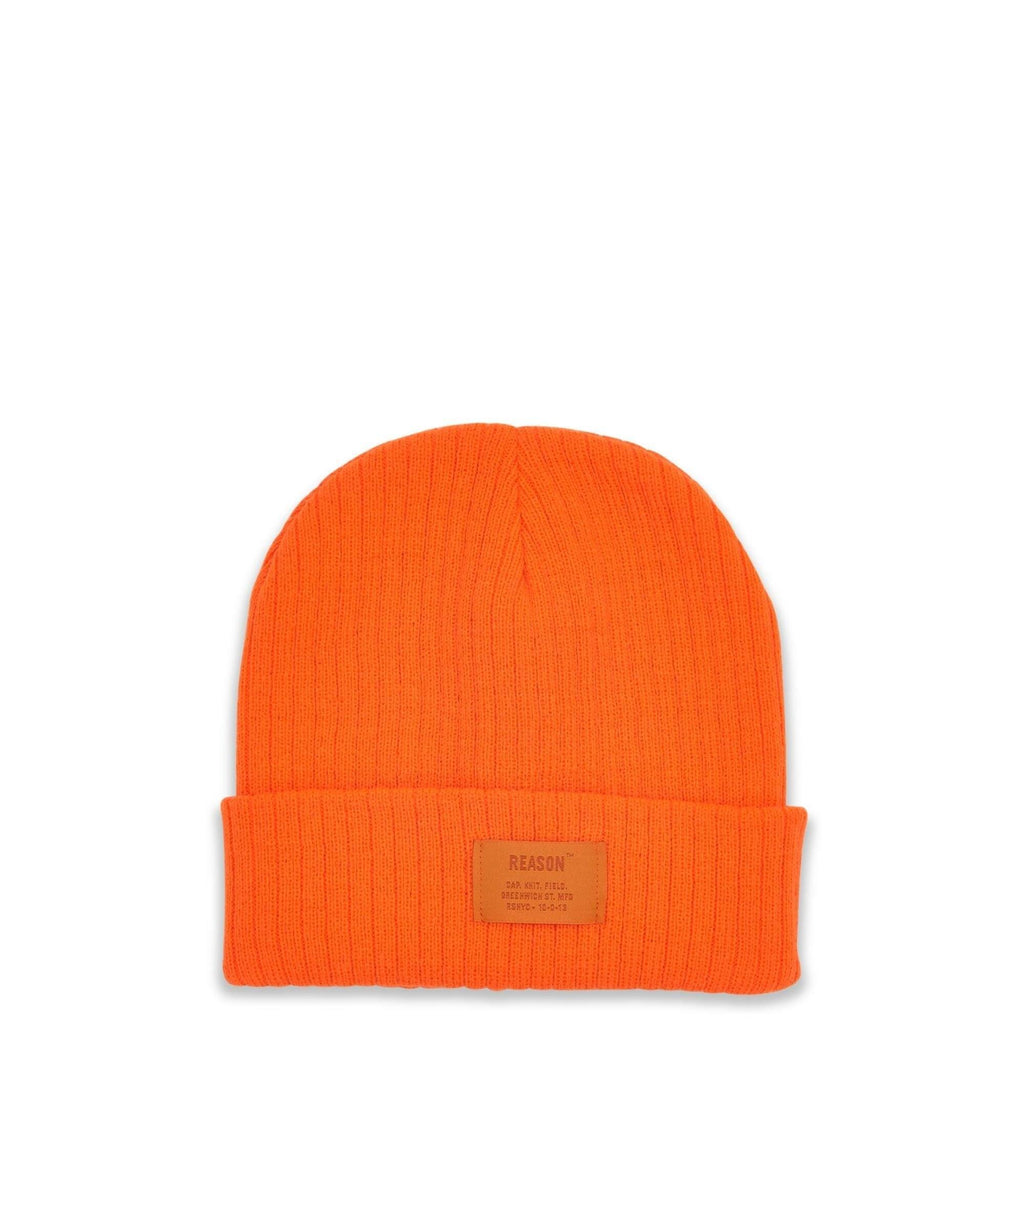 TONAL CORE BEANIE - ORANGE